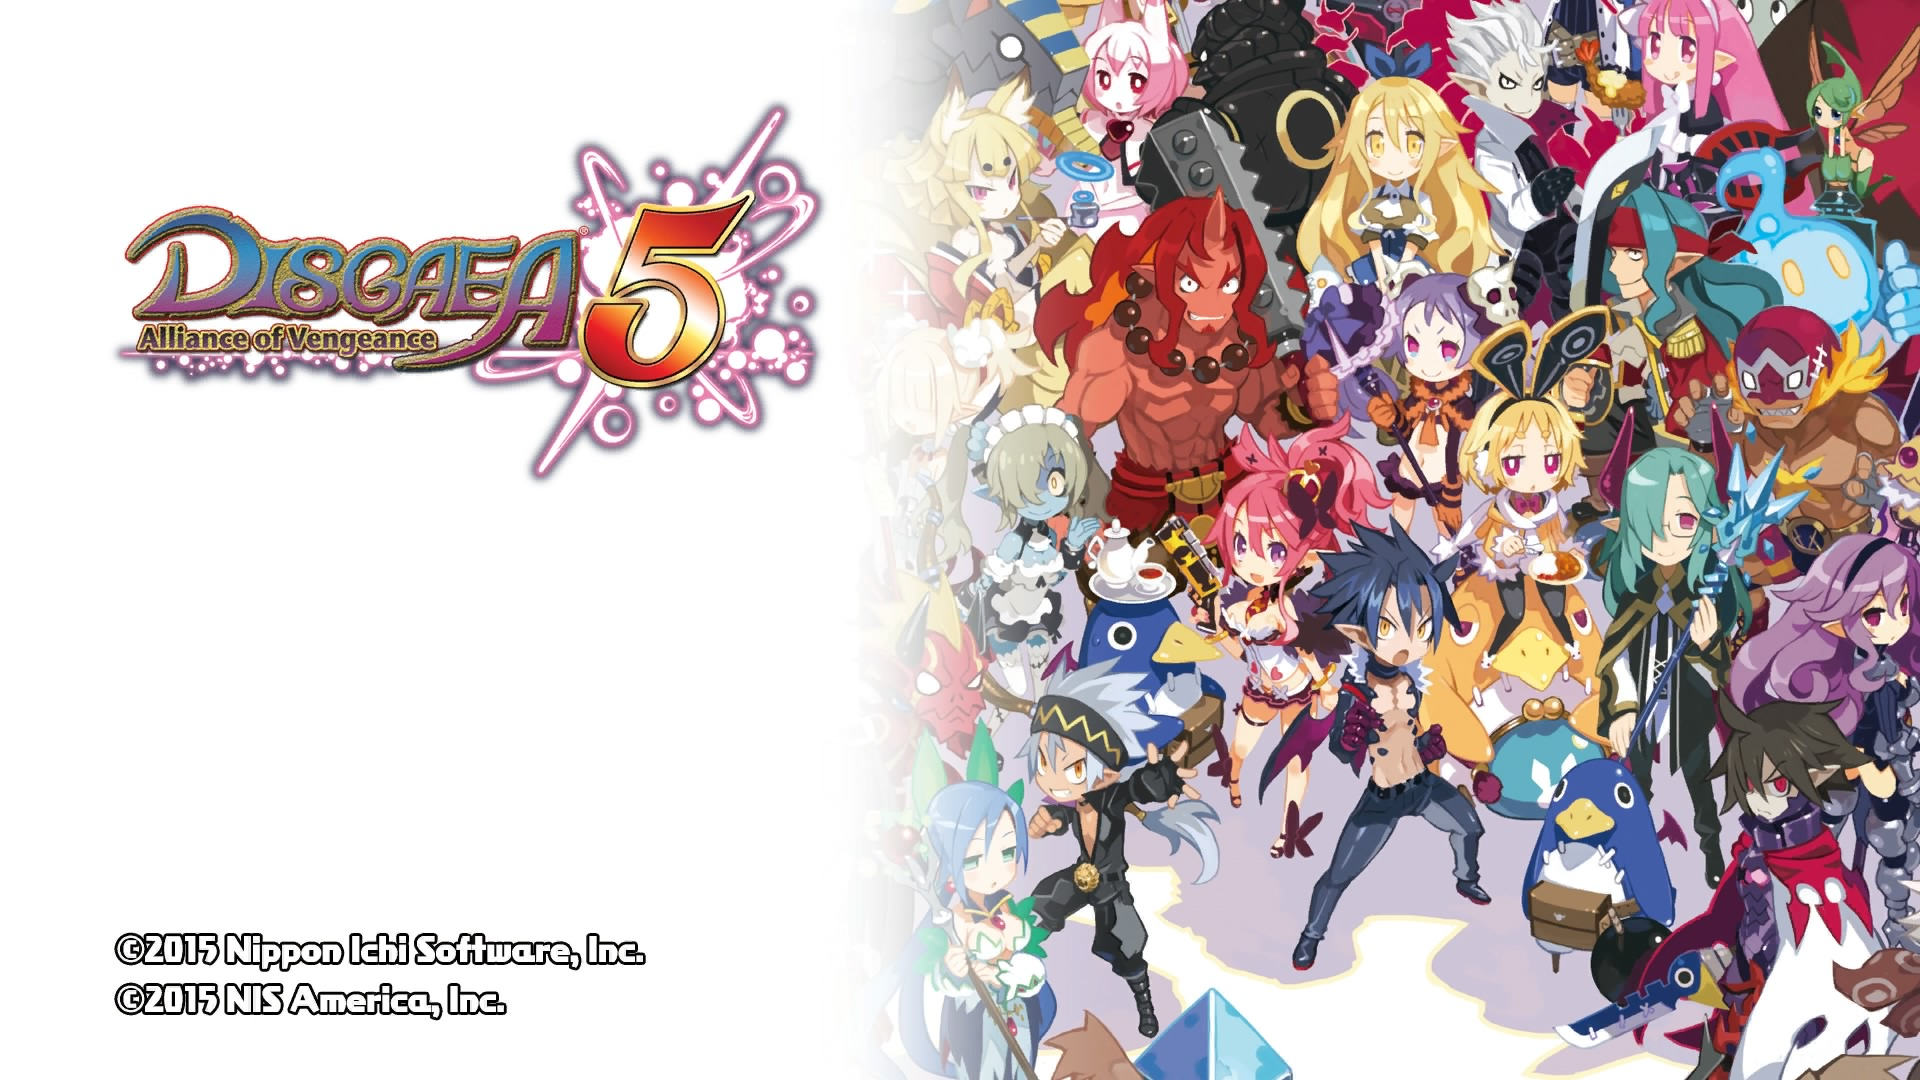 Disgaea 5 Complete: The Legendary RPG Lands on Switch with a